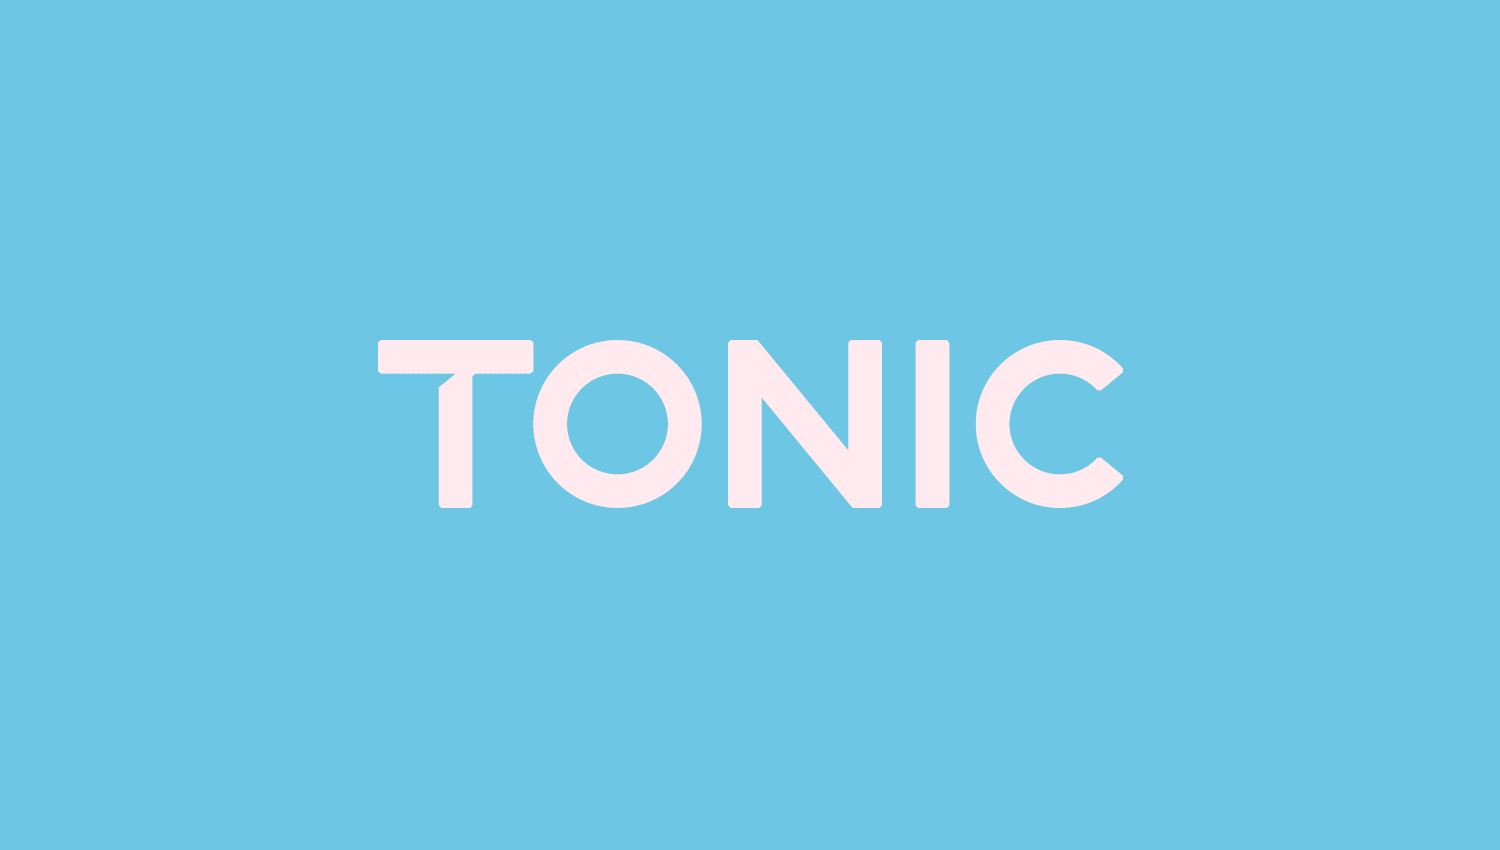 TONIC - VICE Health